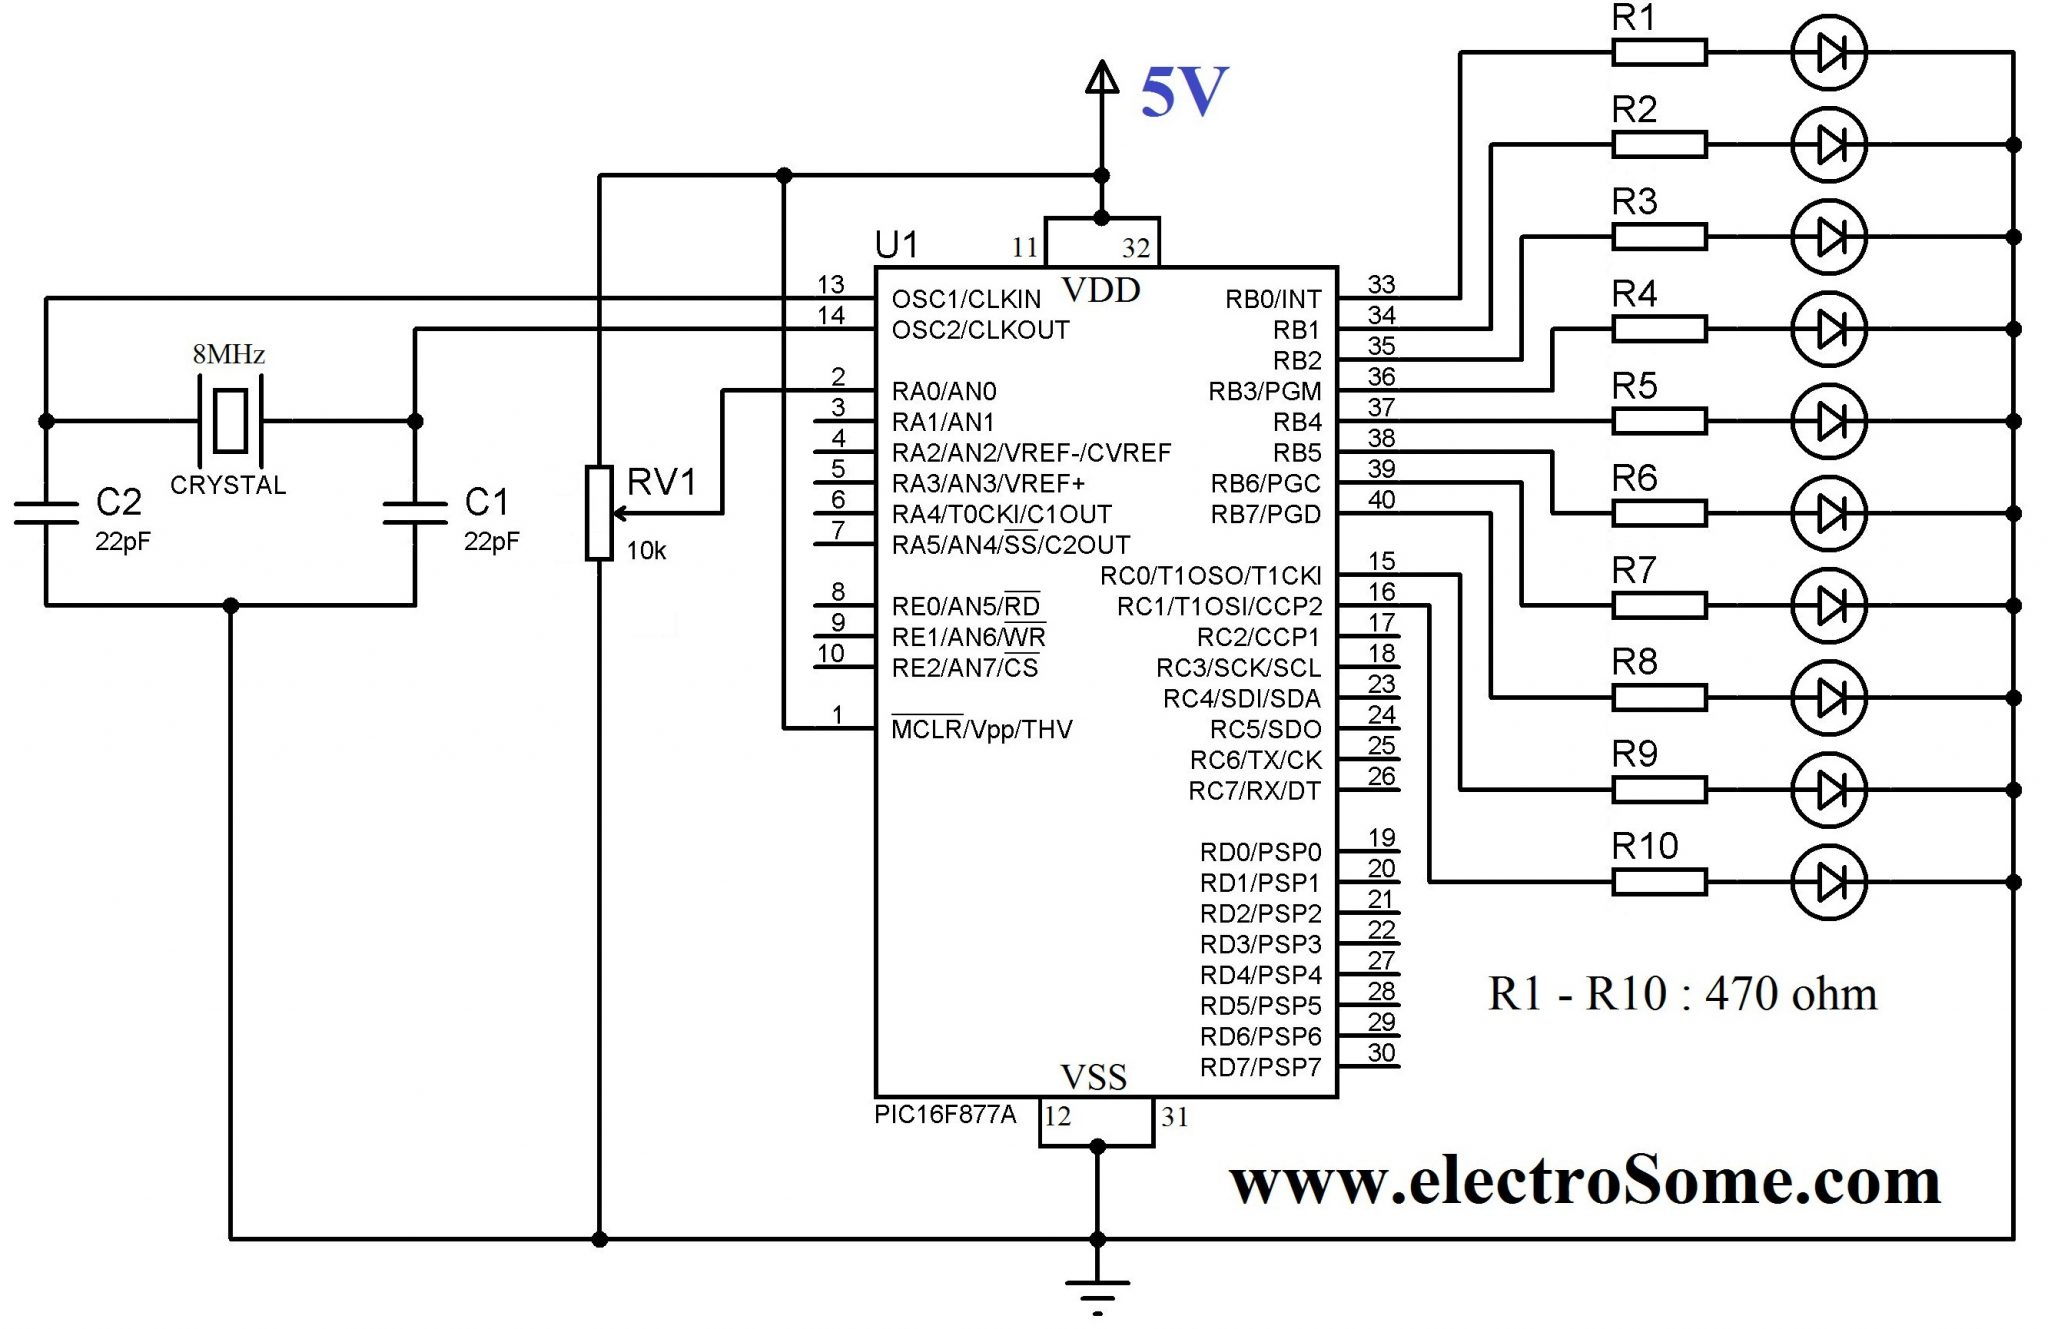 using internal adc module of pic microcontroller